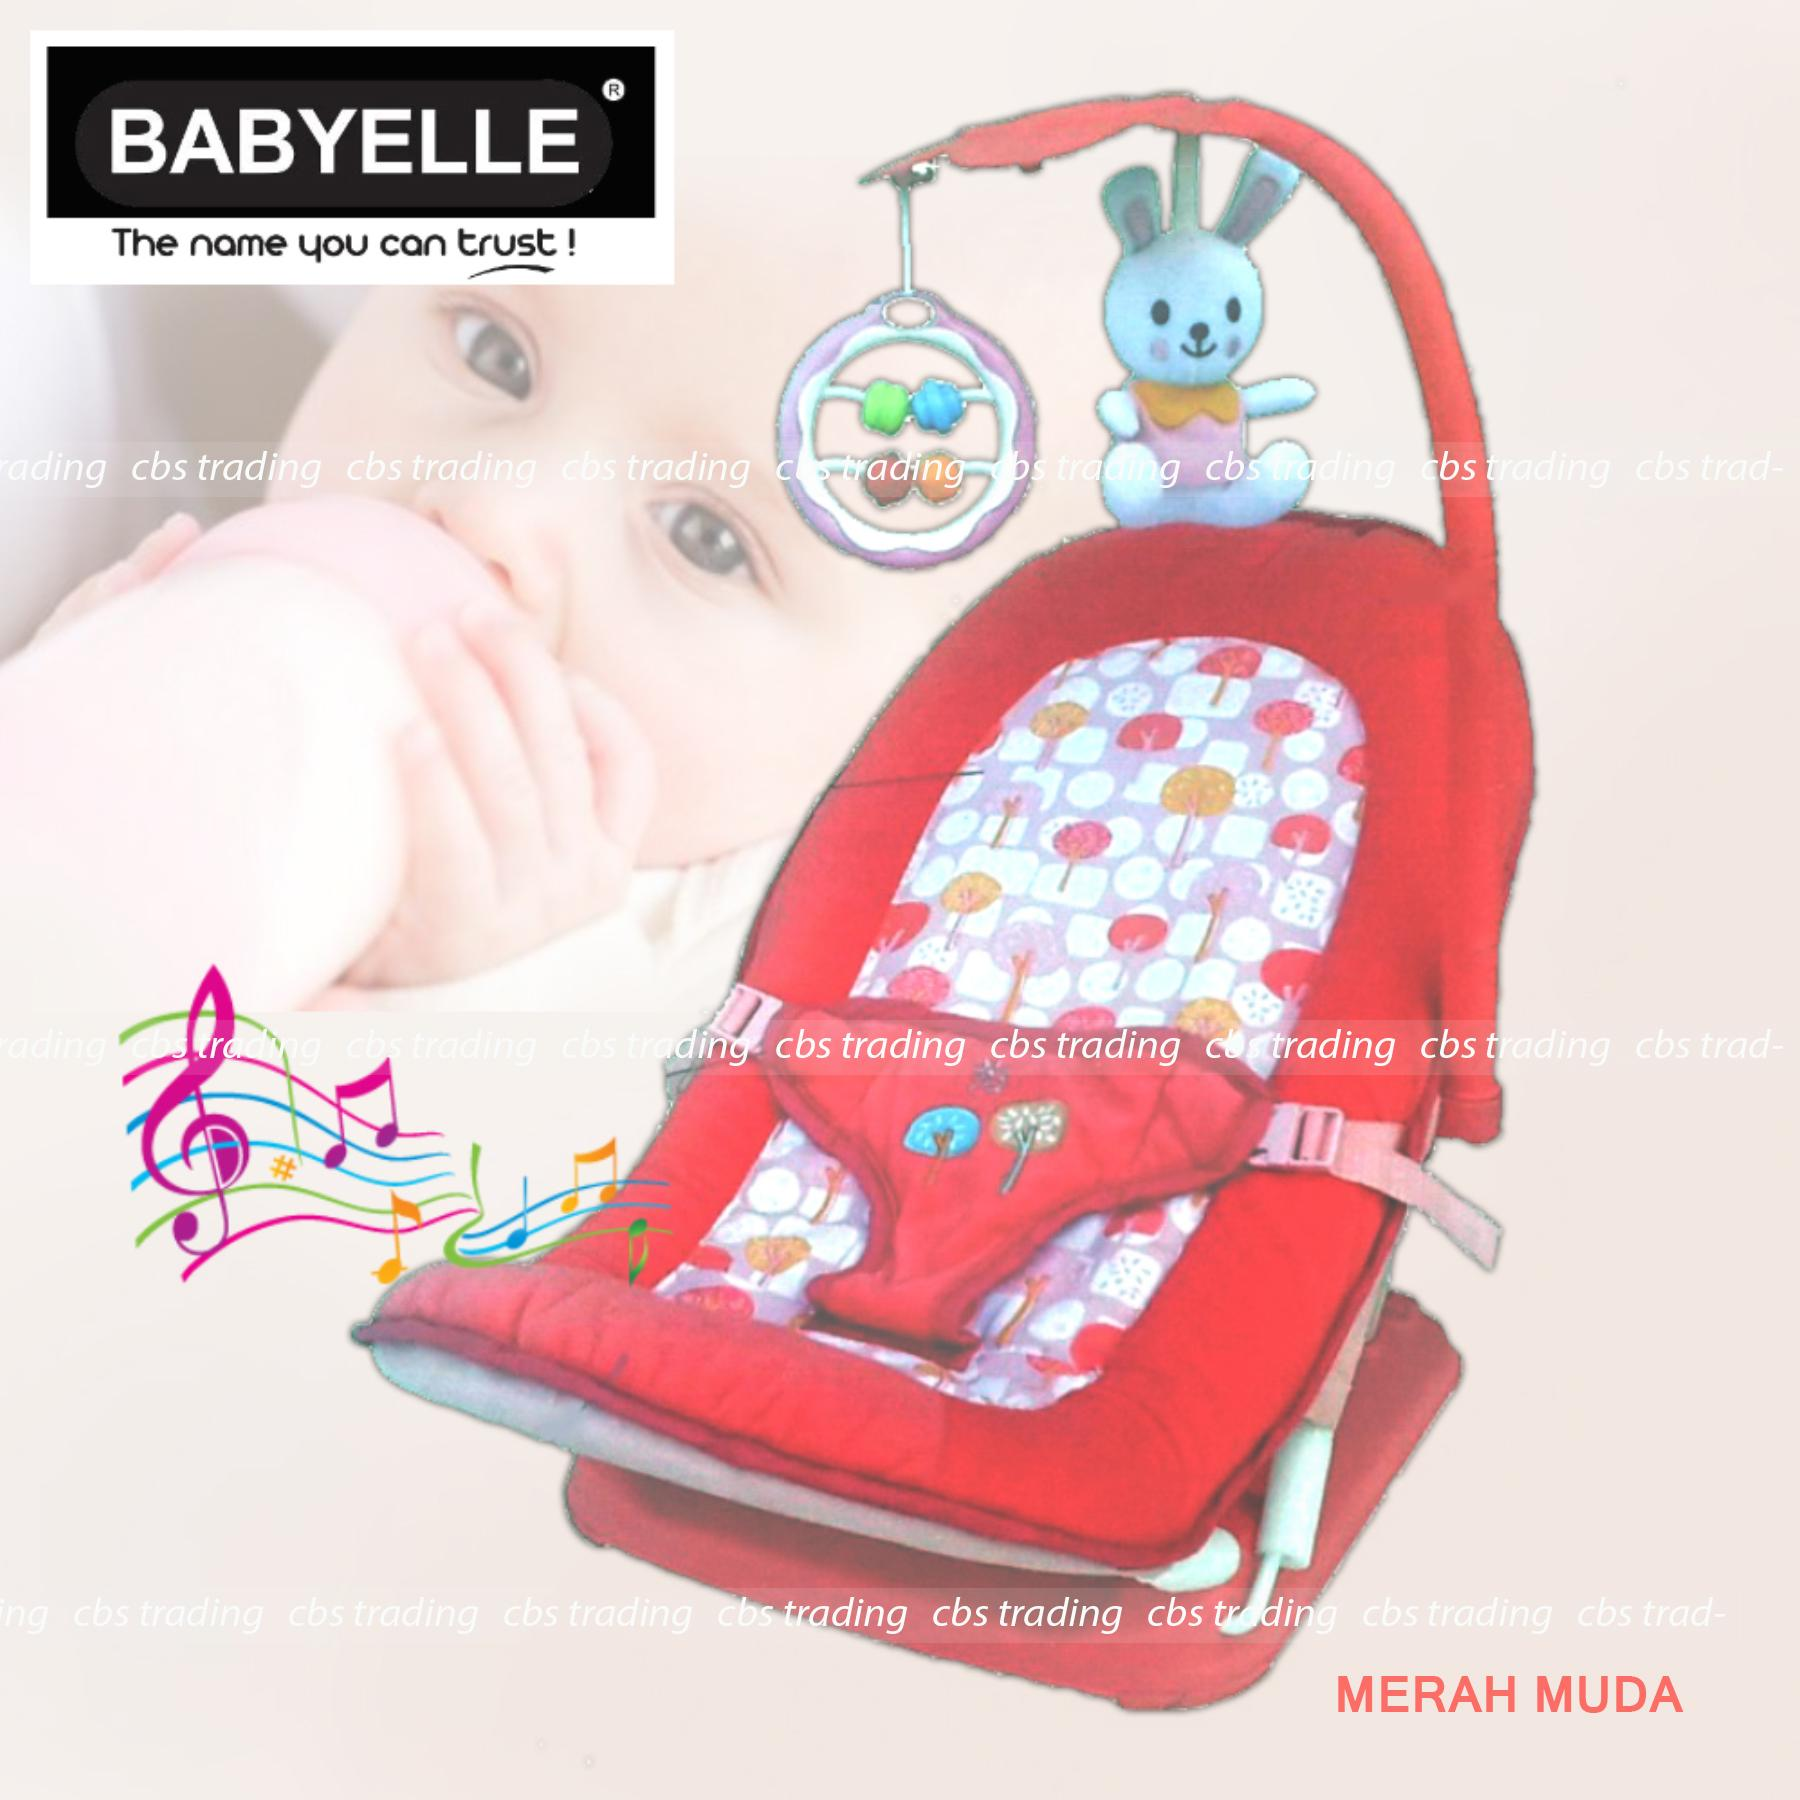 Babyelle Fold Up Infant Seat With Melodies And Soothing Vibrations - Baby Elle Kursi Lipat Bayi - Merah Muda